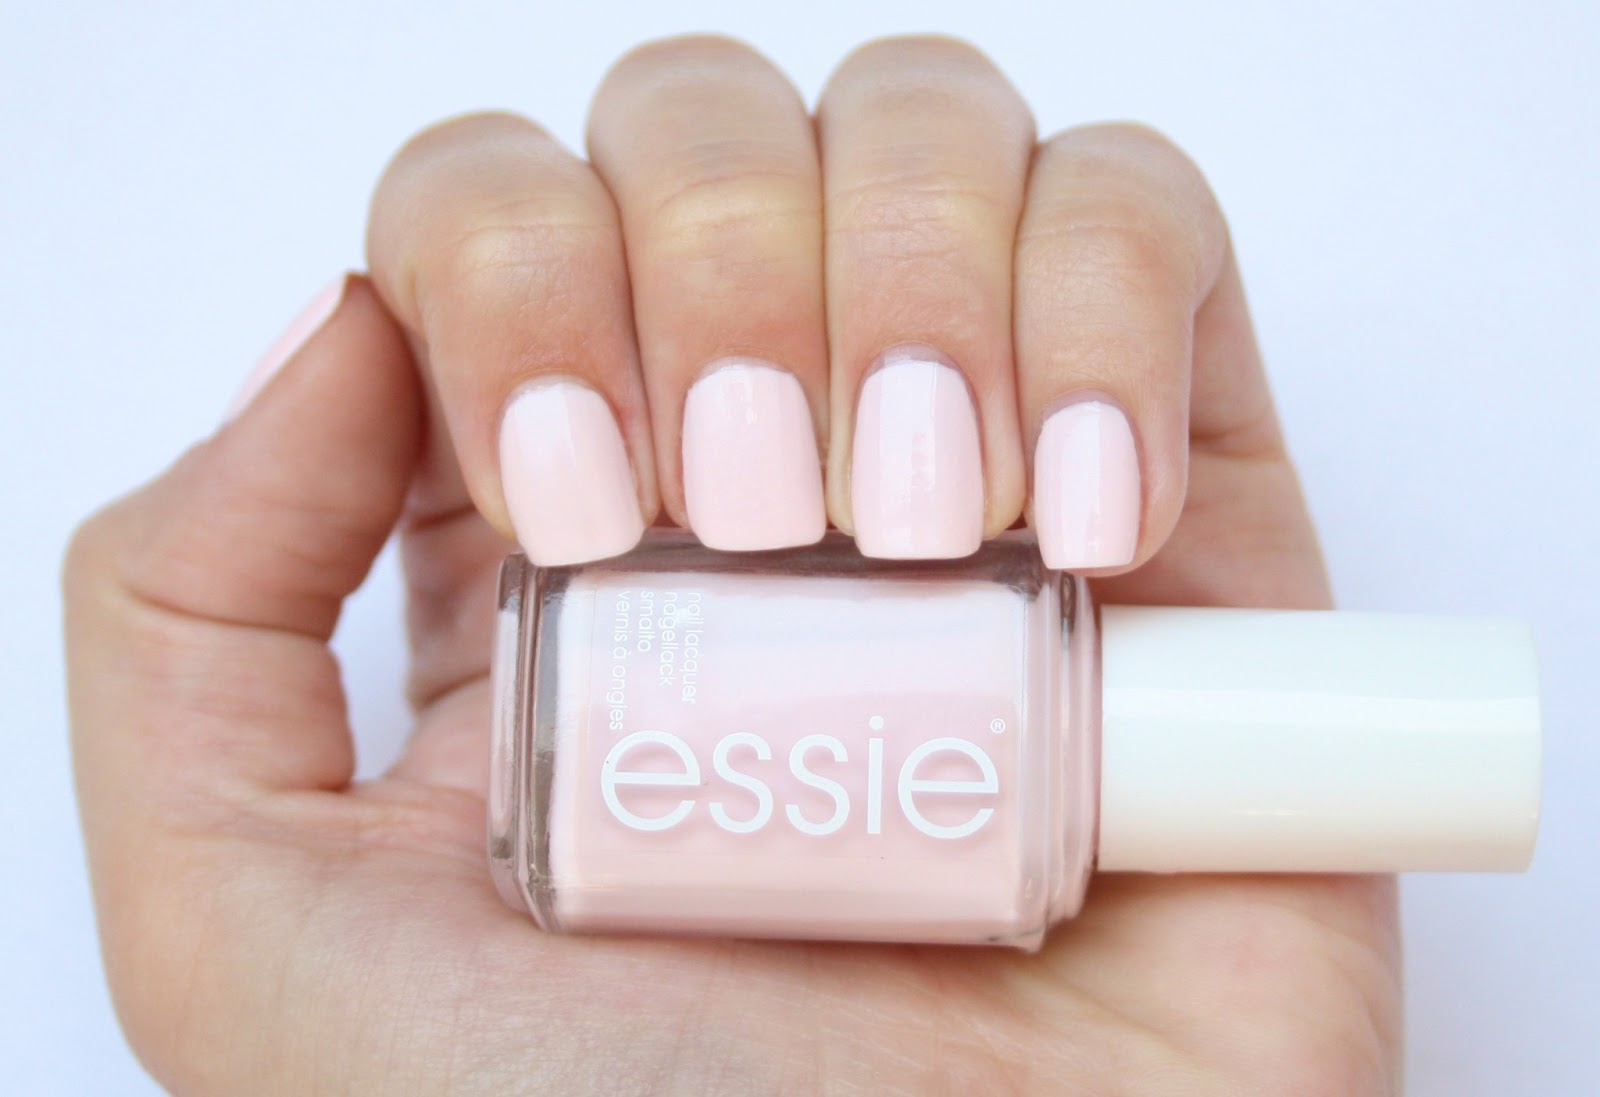 Essie Nail Polish 2 – Bora Bora Pedispa Nails – Katy Freeway at ...